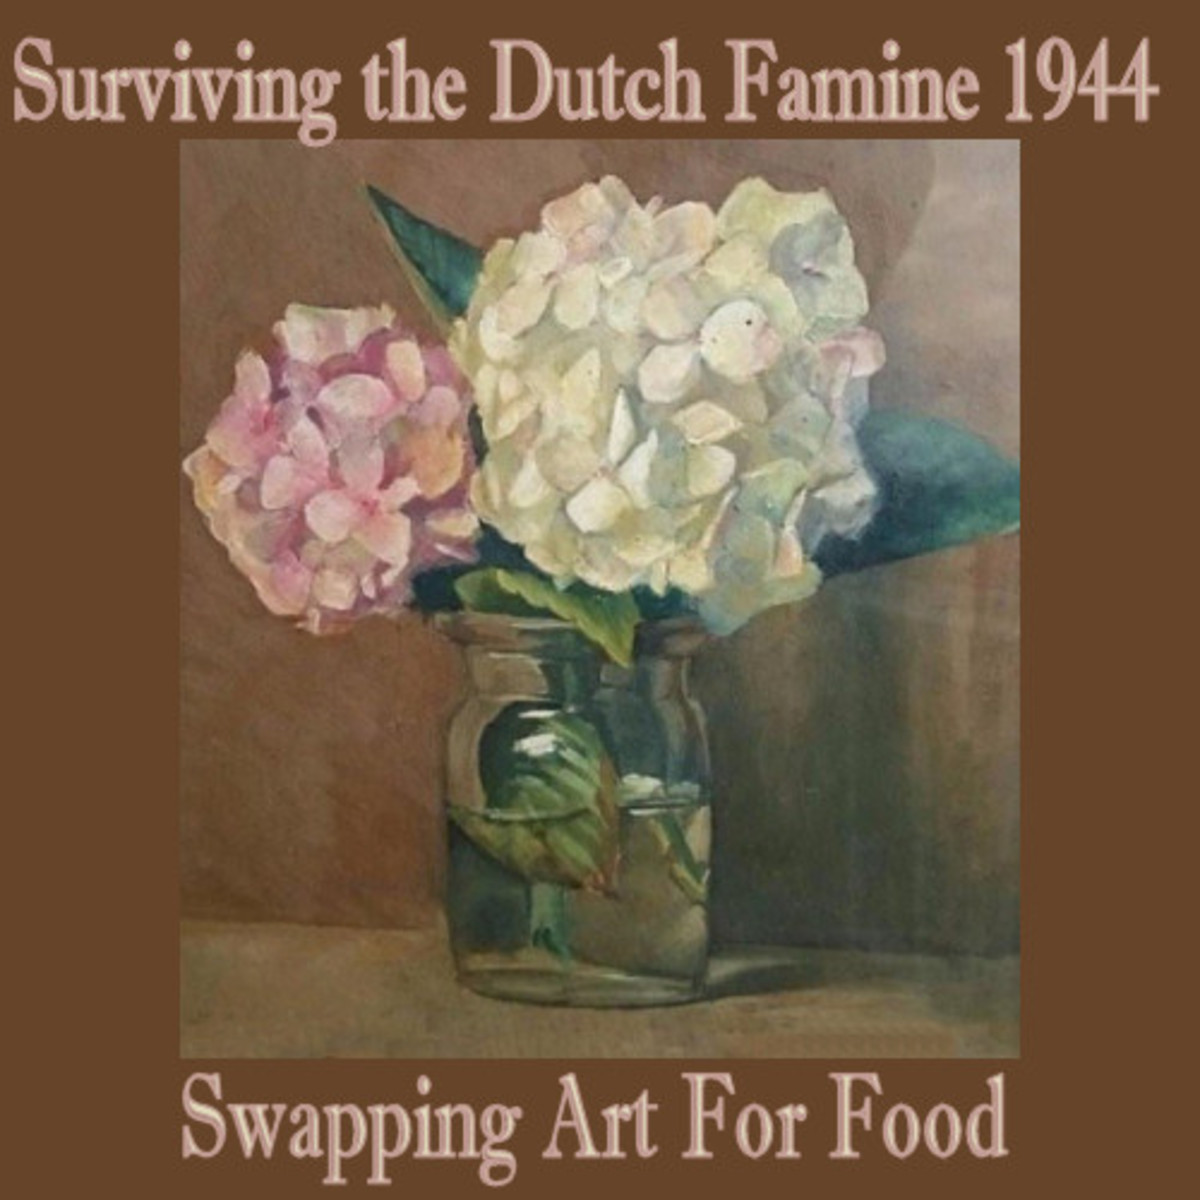 The Love Story of My Mom and Dad-Surviving the Dutch Famine 1944